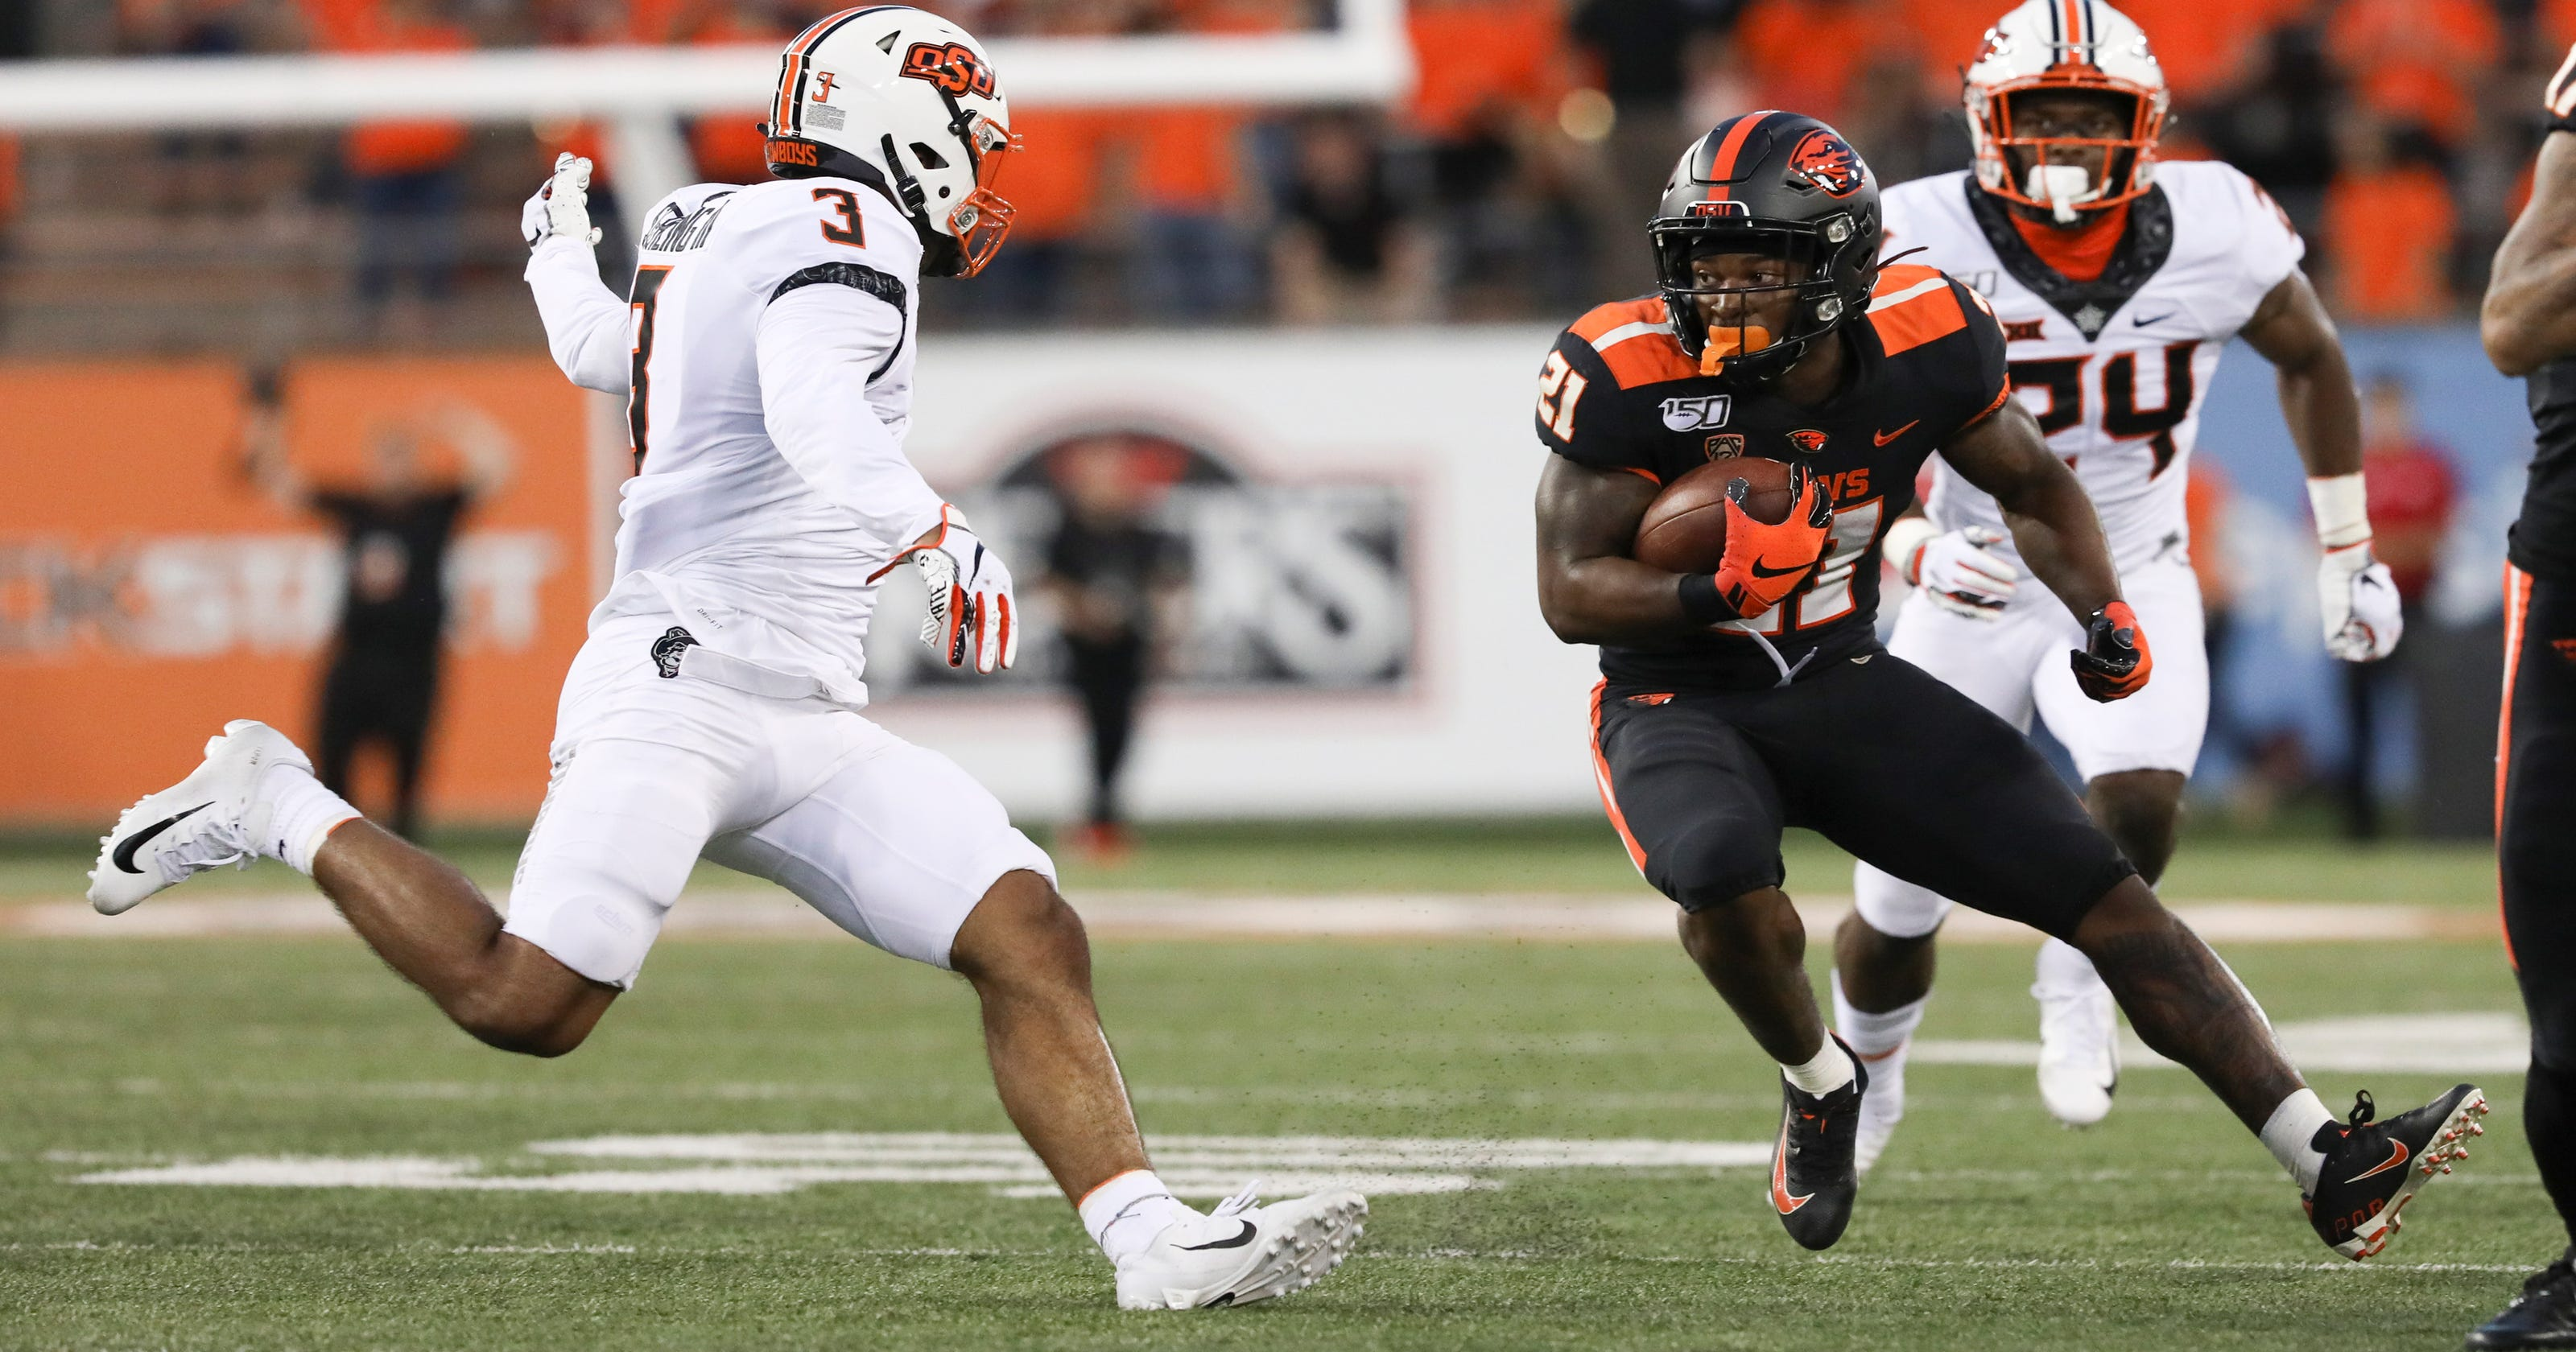 Oklahoma State opens with 52-36 victory over Oregon State